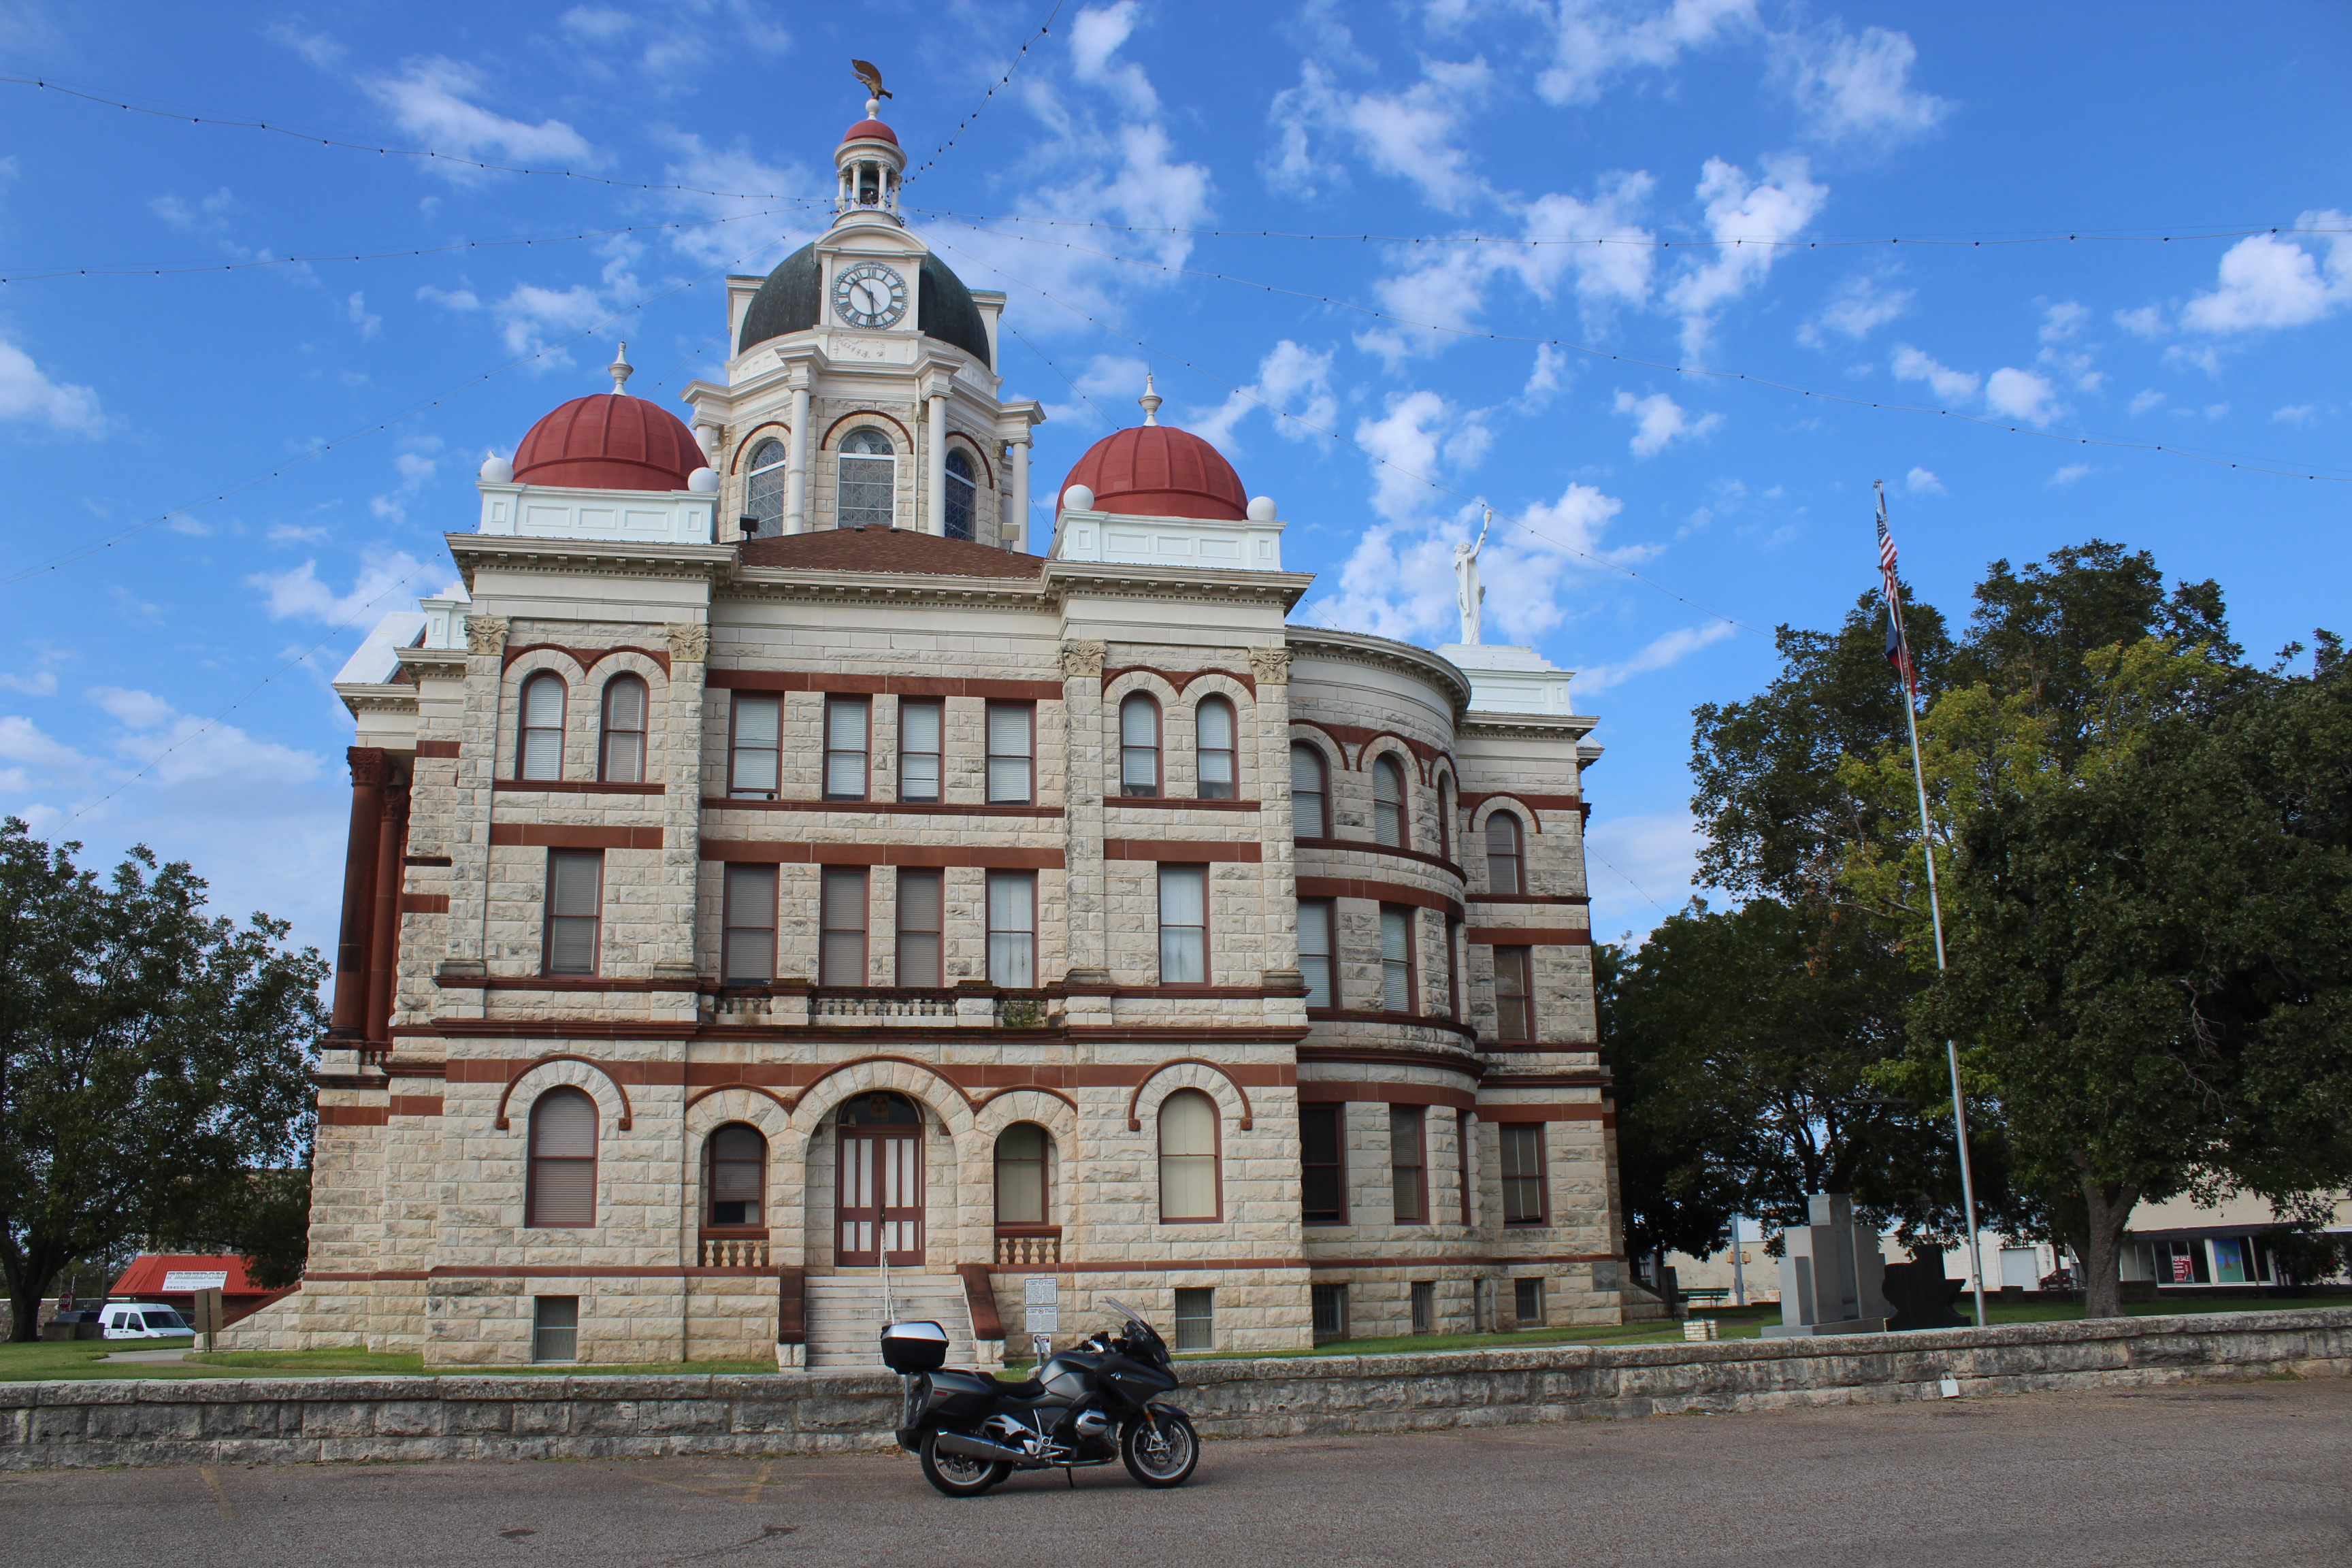 Coryell County Courthouse 1